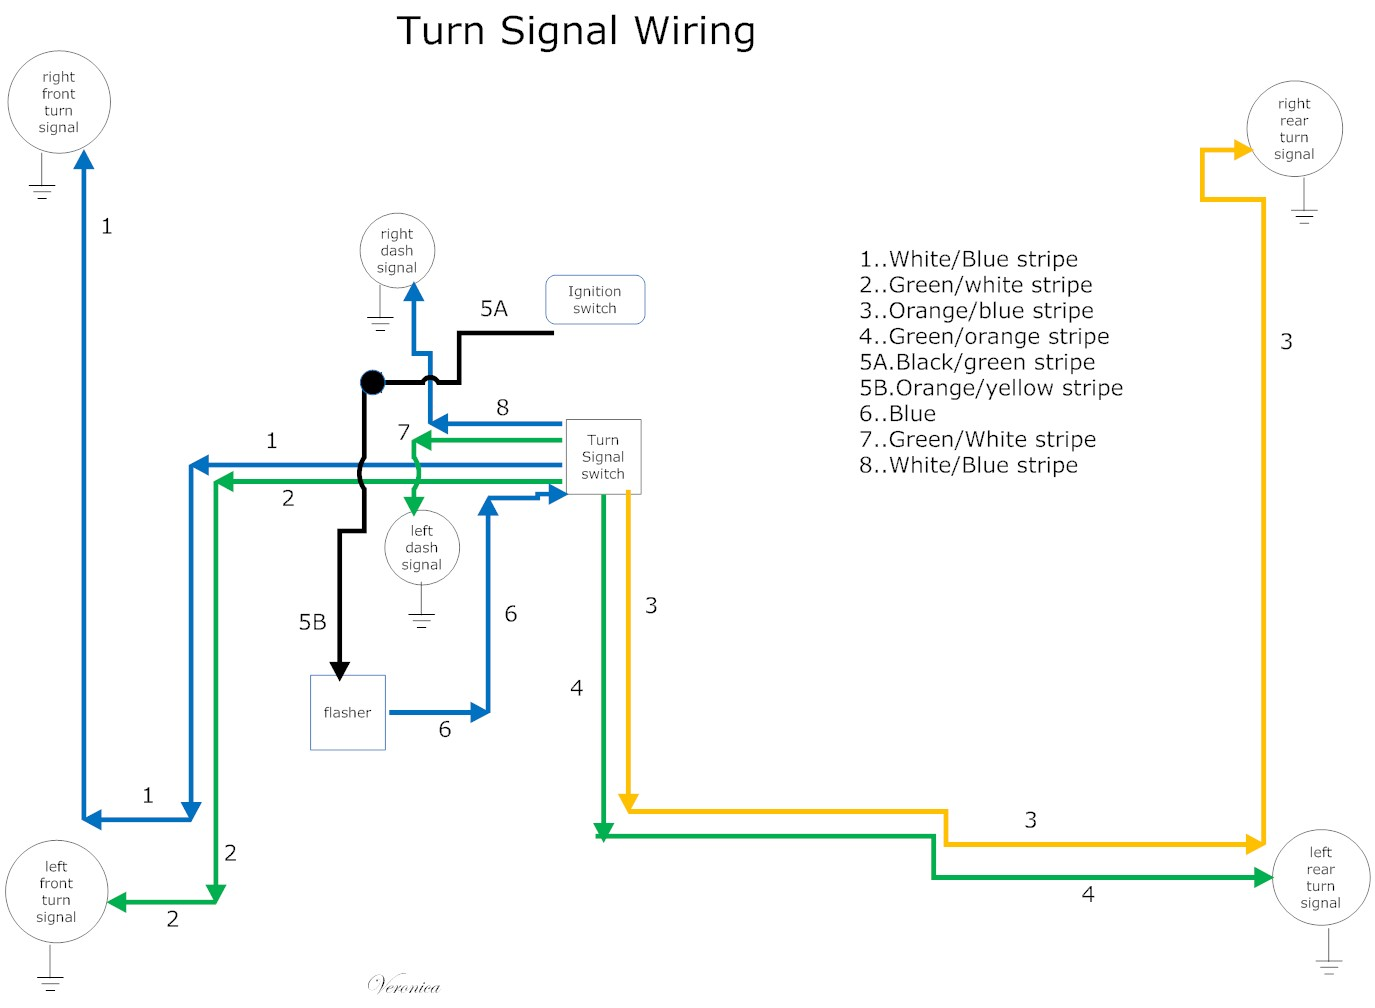 Turn+signal+Wiring the care and feeding of ponies 1965 1966 mustang turn signal turn signal kit wiring diagram at virtualis.co